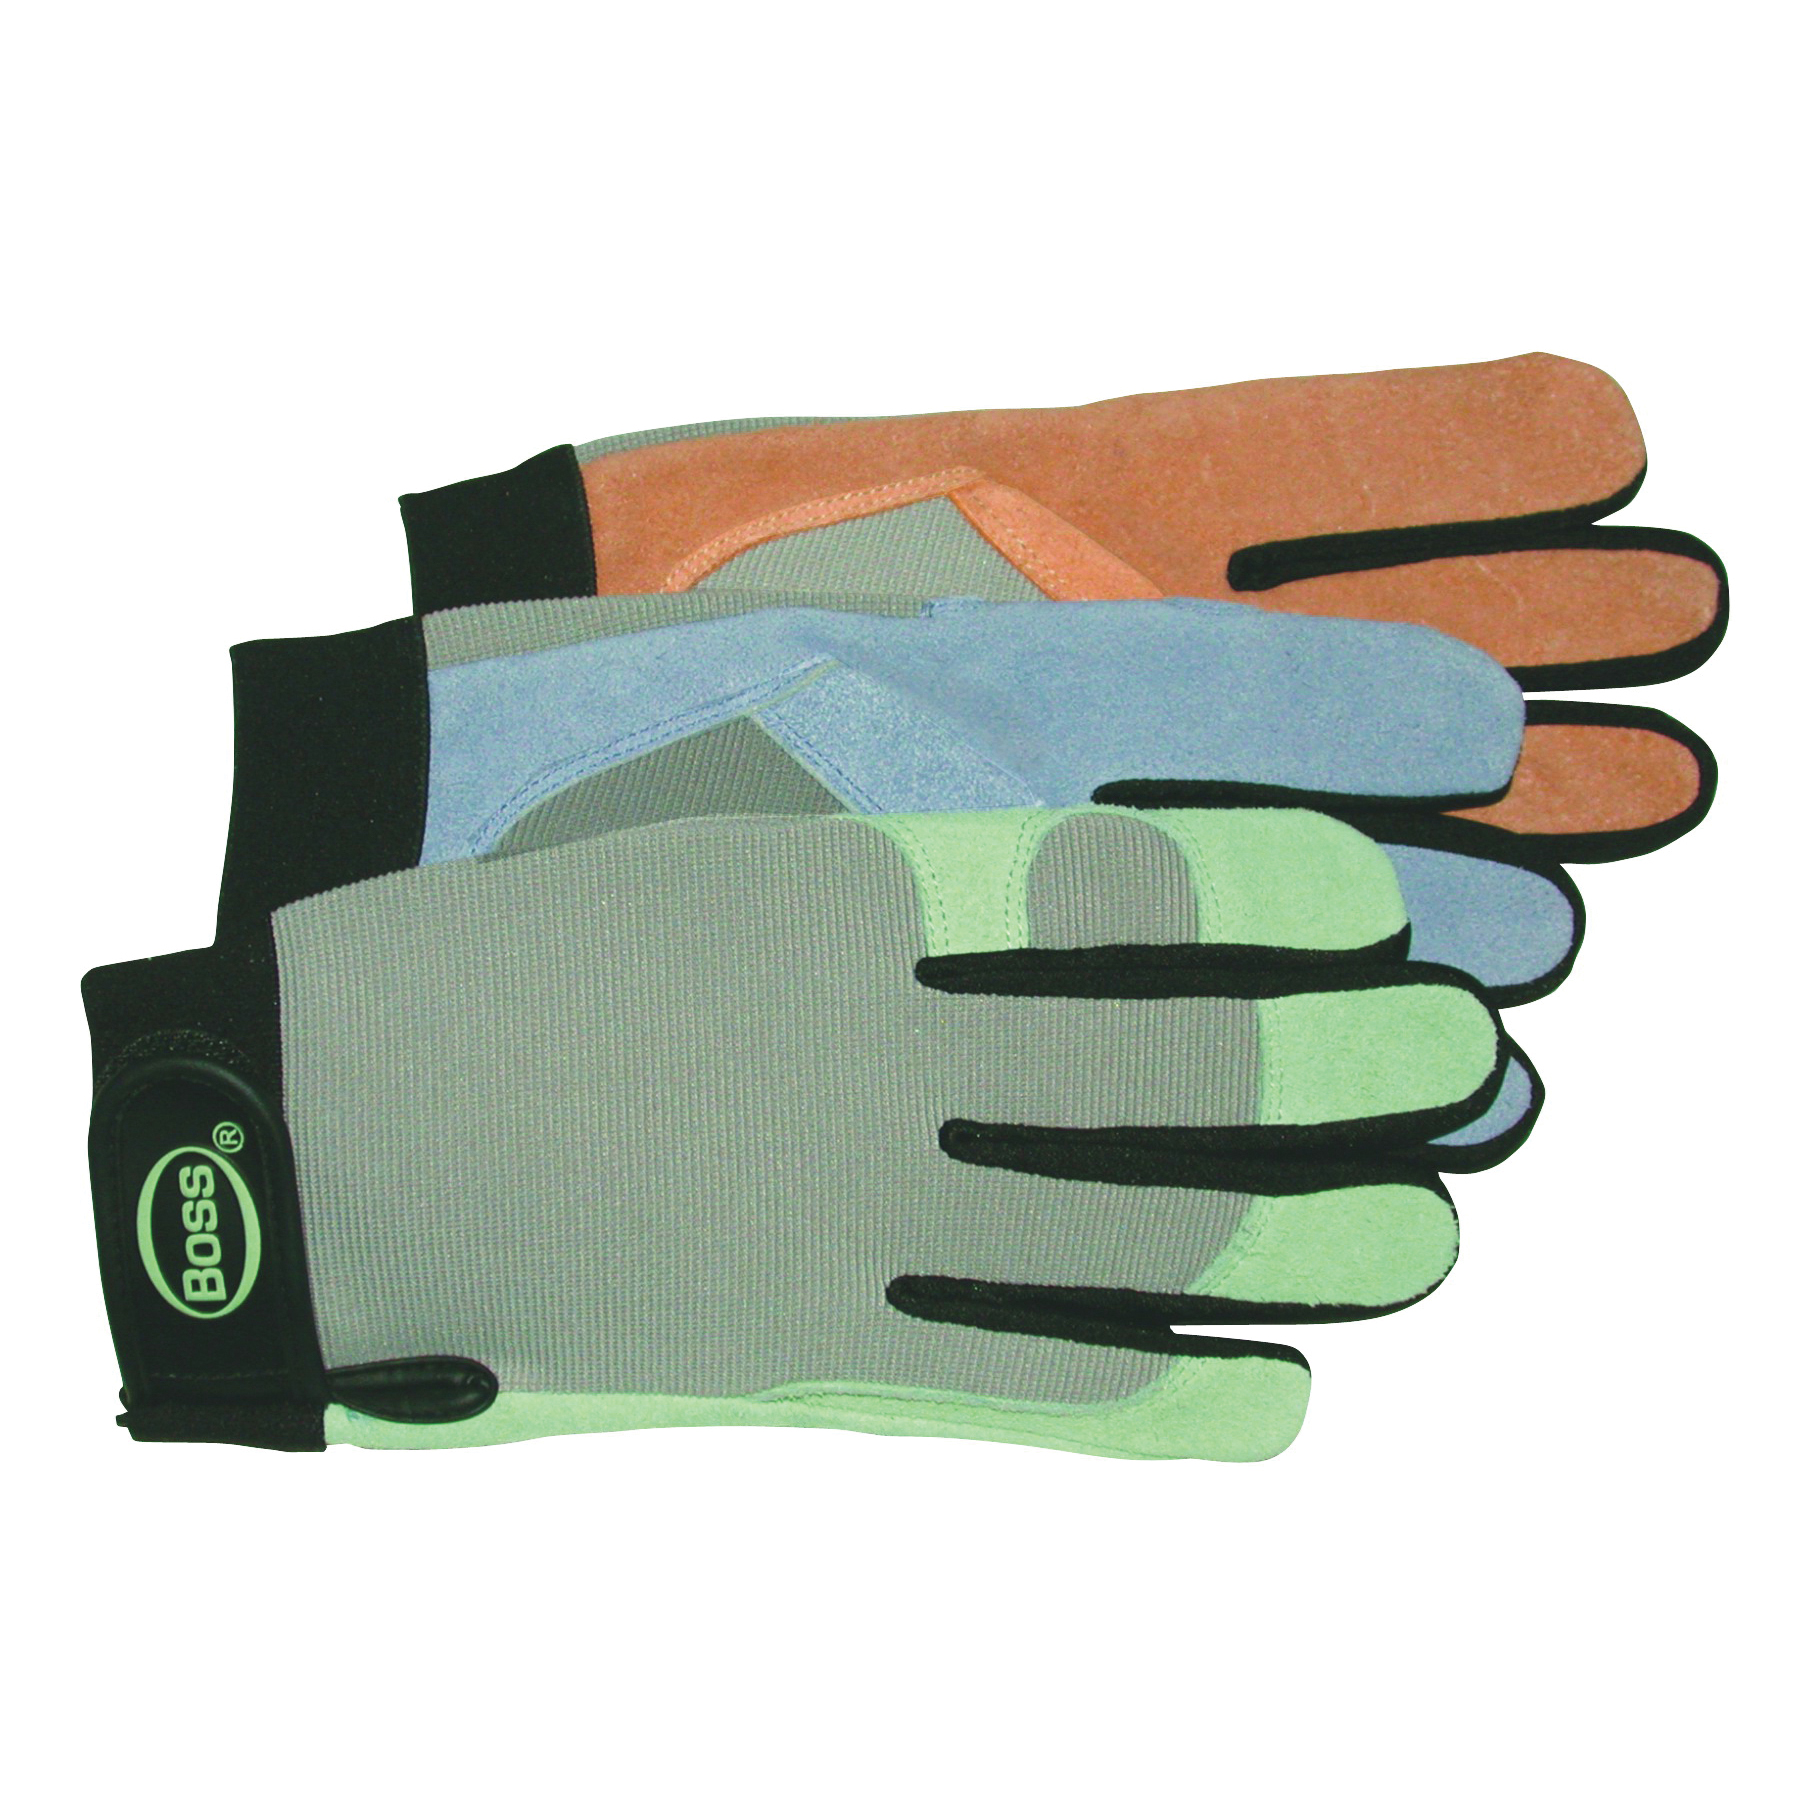 Picture of BOSS 790 Protective Gloves, Women's, M, Keystone Thumb, Elastic Cuff, Cowhide Leather, Green/Pink/Purple